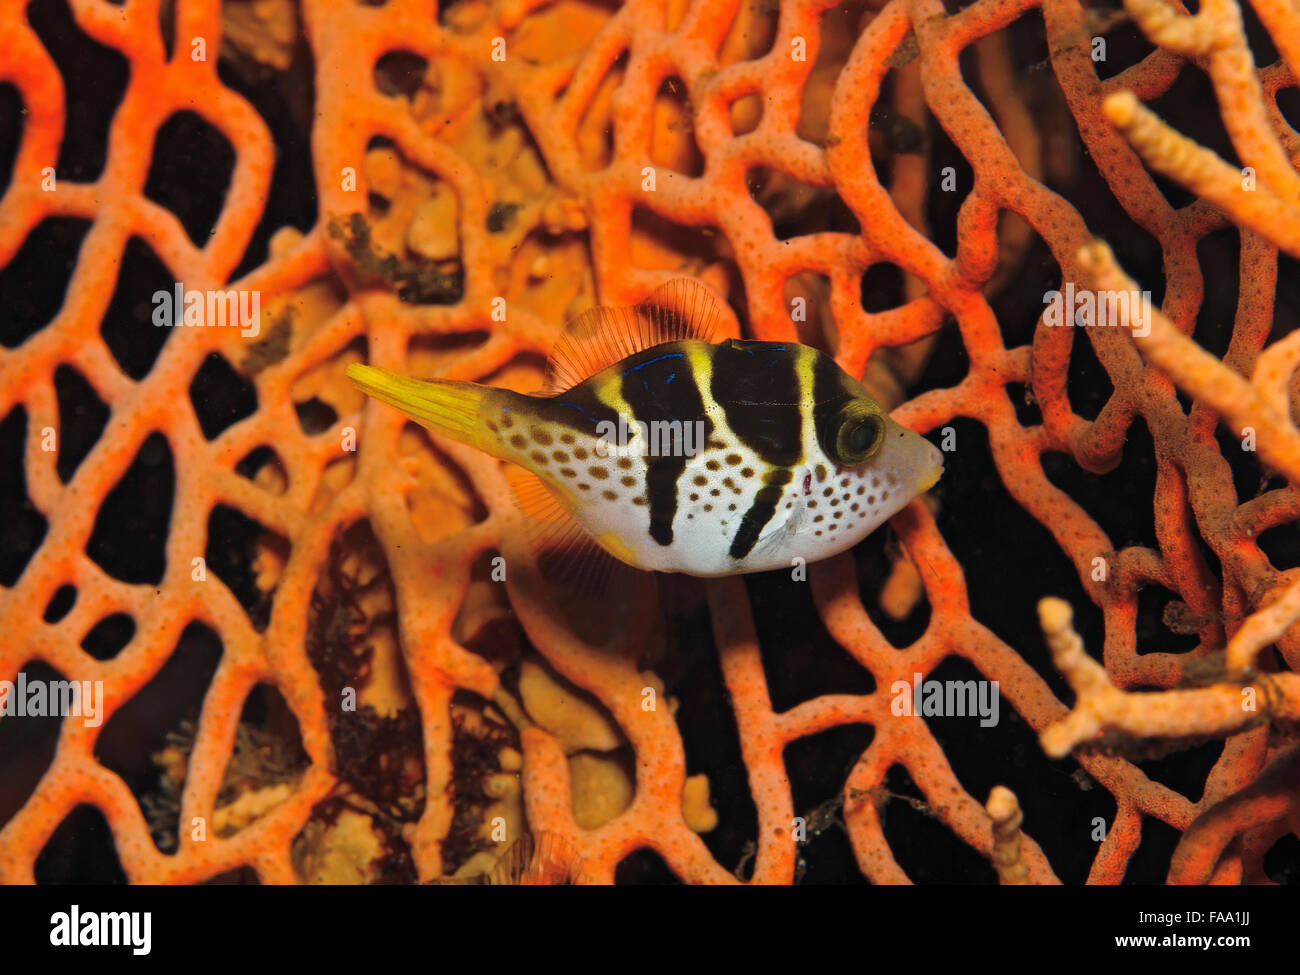 Black-saddled Toby, Canthigaster valentini, on fan coral in Tulamben, Bali, Indonesia Stock Photo